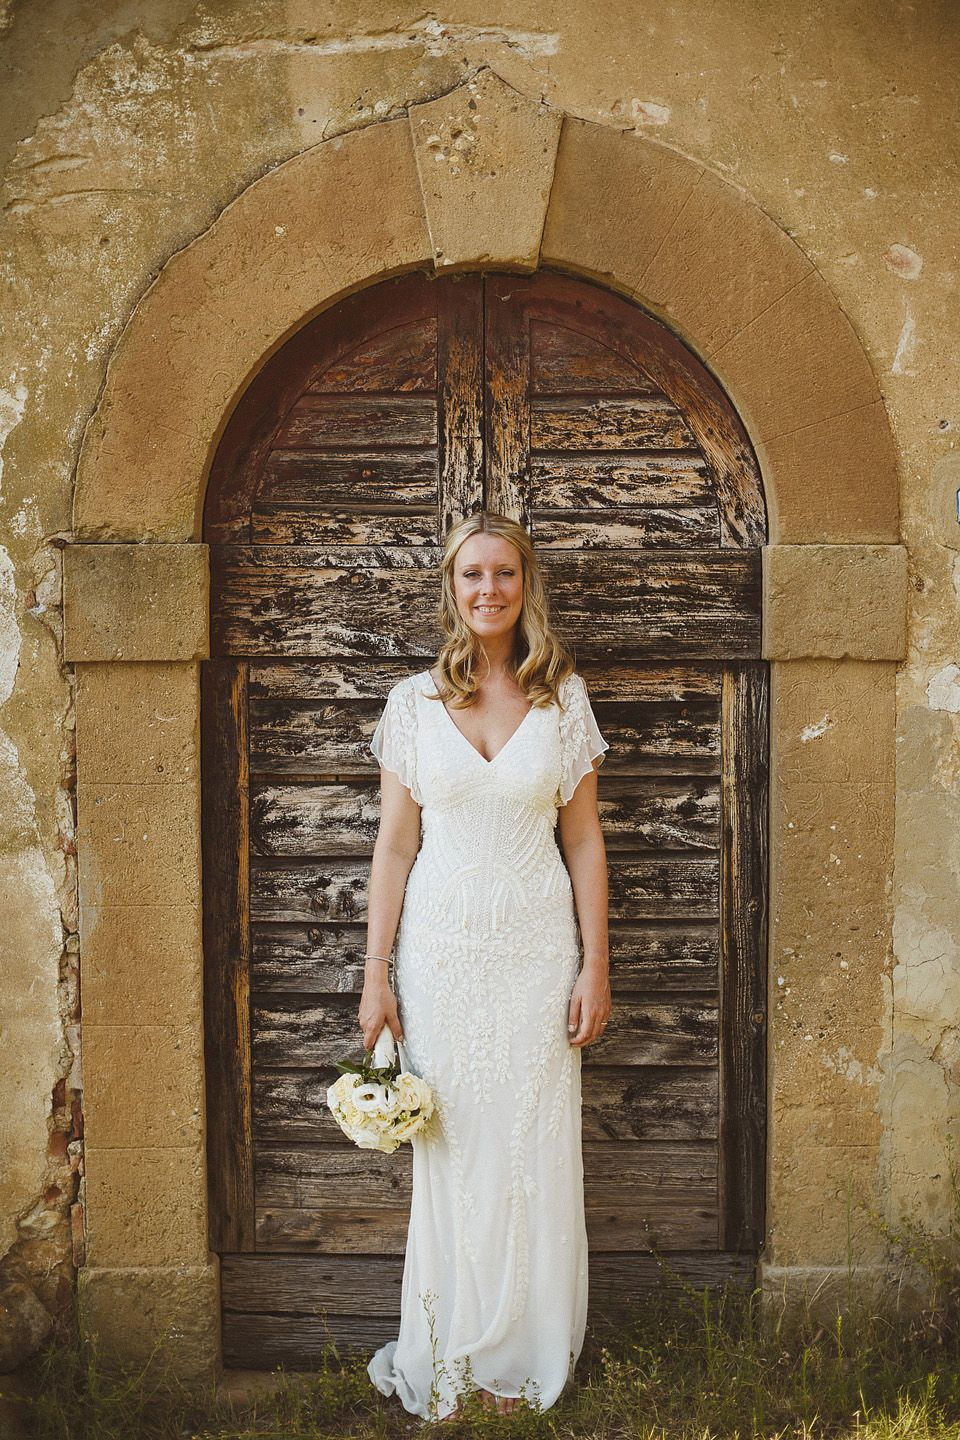 An eliza jane howell beaded gown for a rustic style wedding in an eliza jane howell beaded gown for a rustic style wedding in tuscany ombrellifo Images